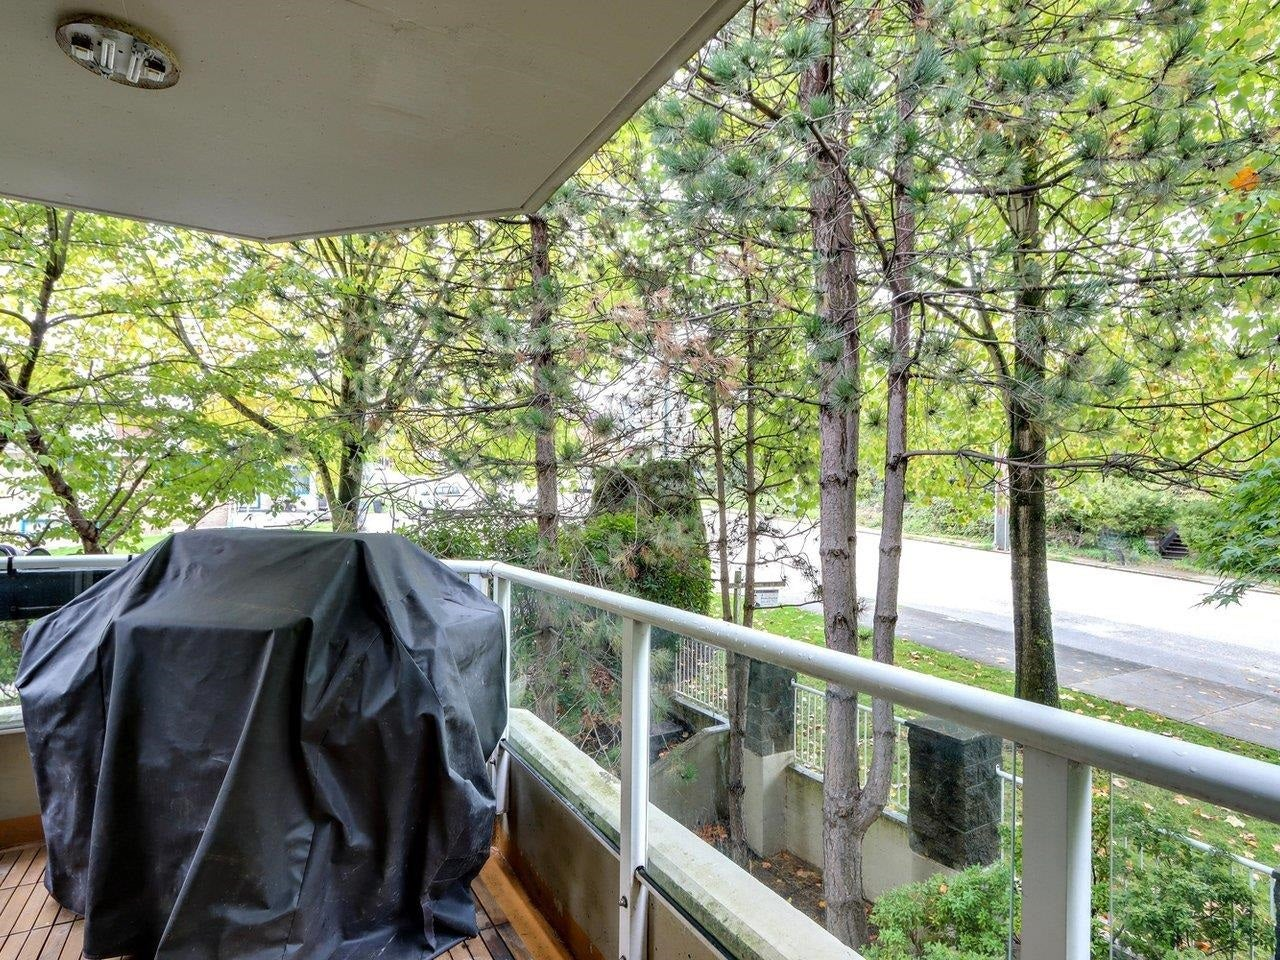 302 412 TWELFTH STREET - Uptown NW Apartment/Condo for sale, 2 Bedrooms (R2625659) - #17